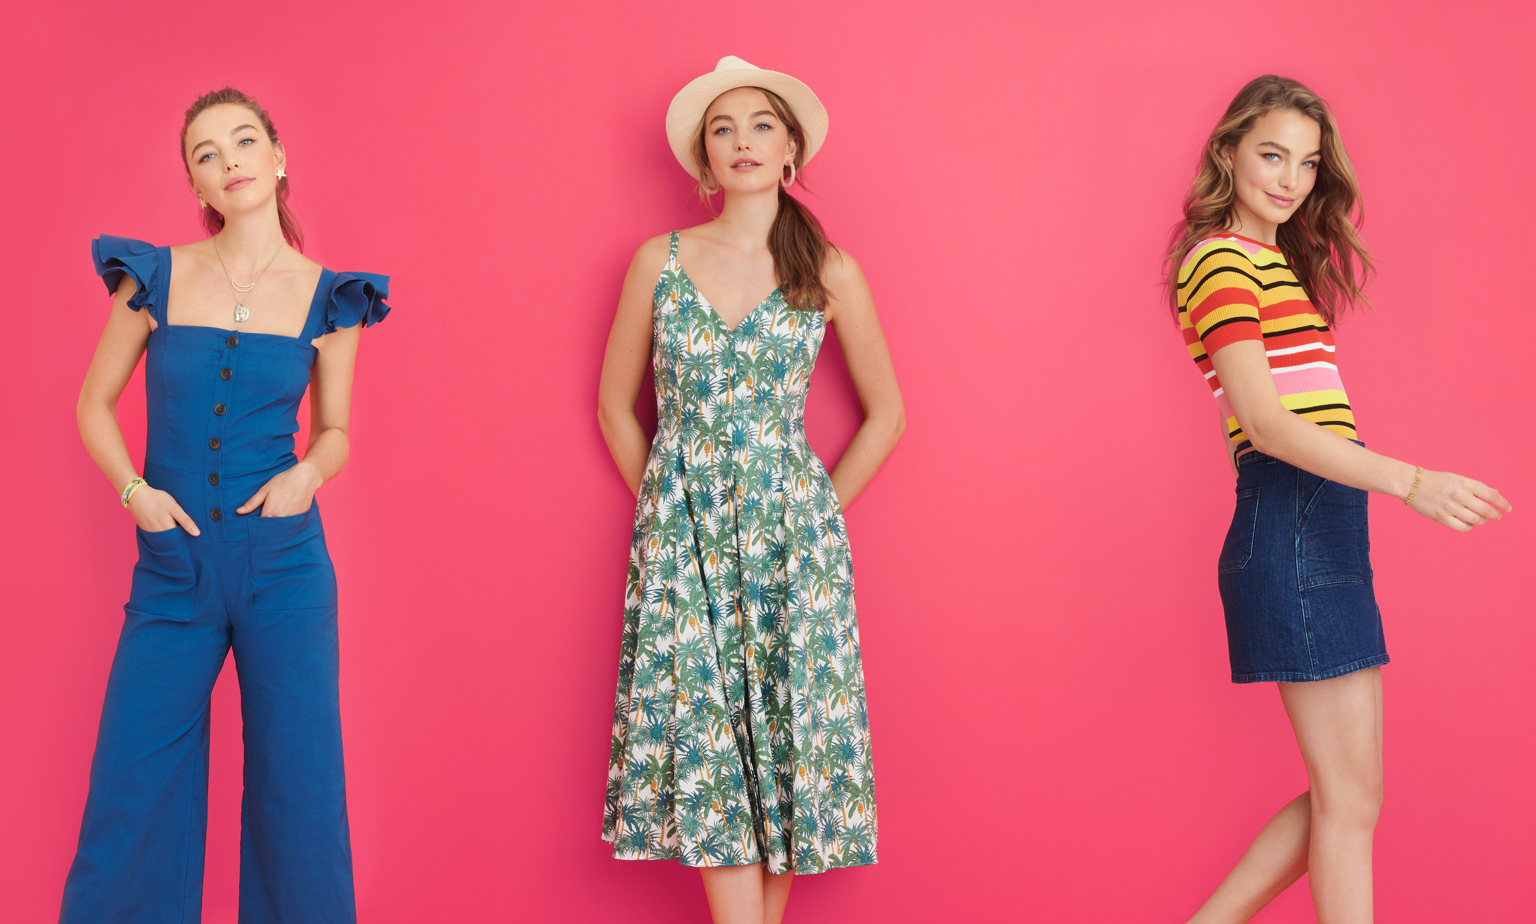 Brand Outlet - Up to 70% off Womenswear